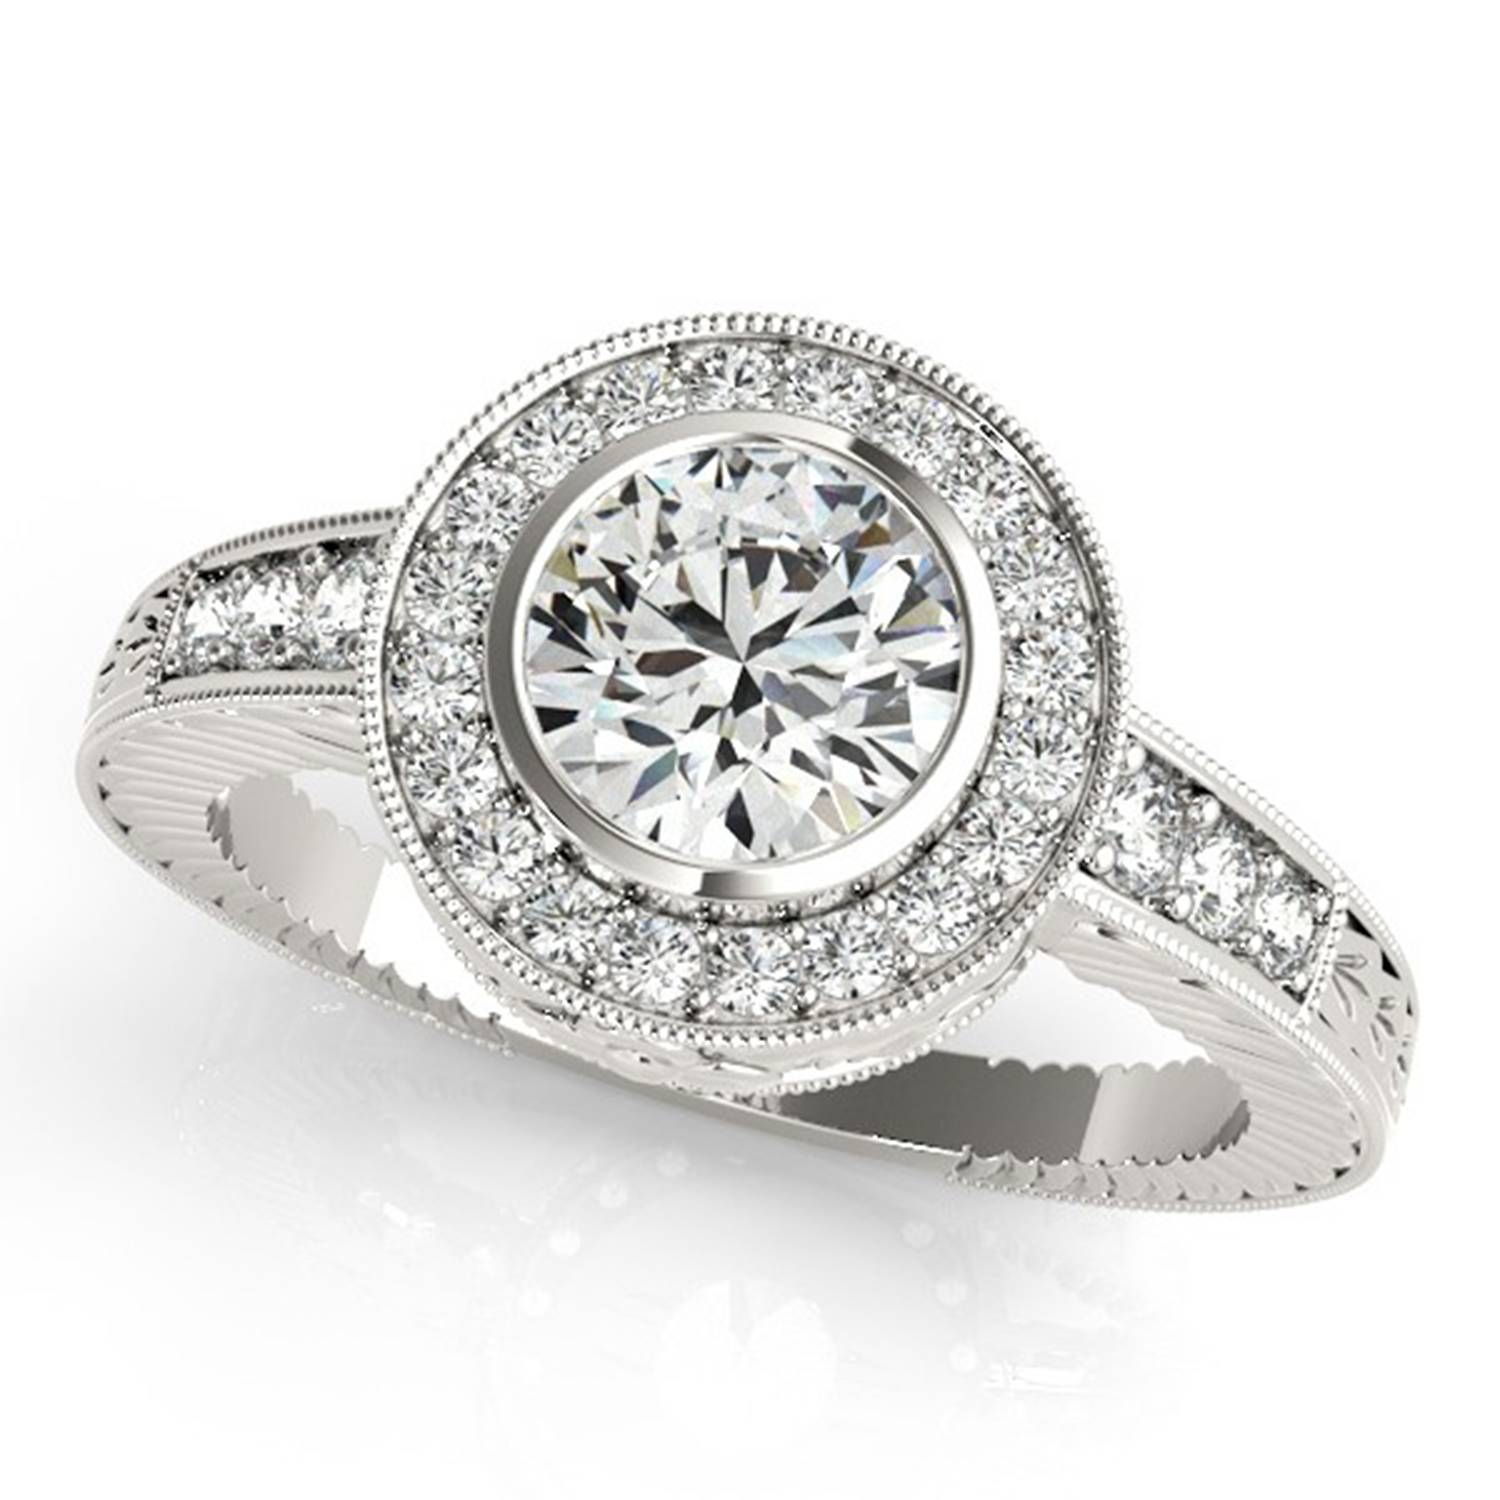 1/2 Carat Bold Design Halo Bezel Set Rebecca Style Diamond With Halo Style Diamond Engagement Rings (Gallery 14 of 15)